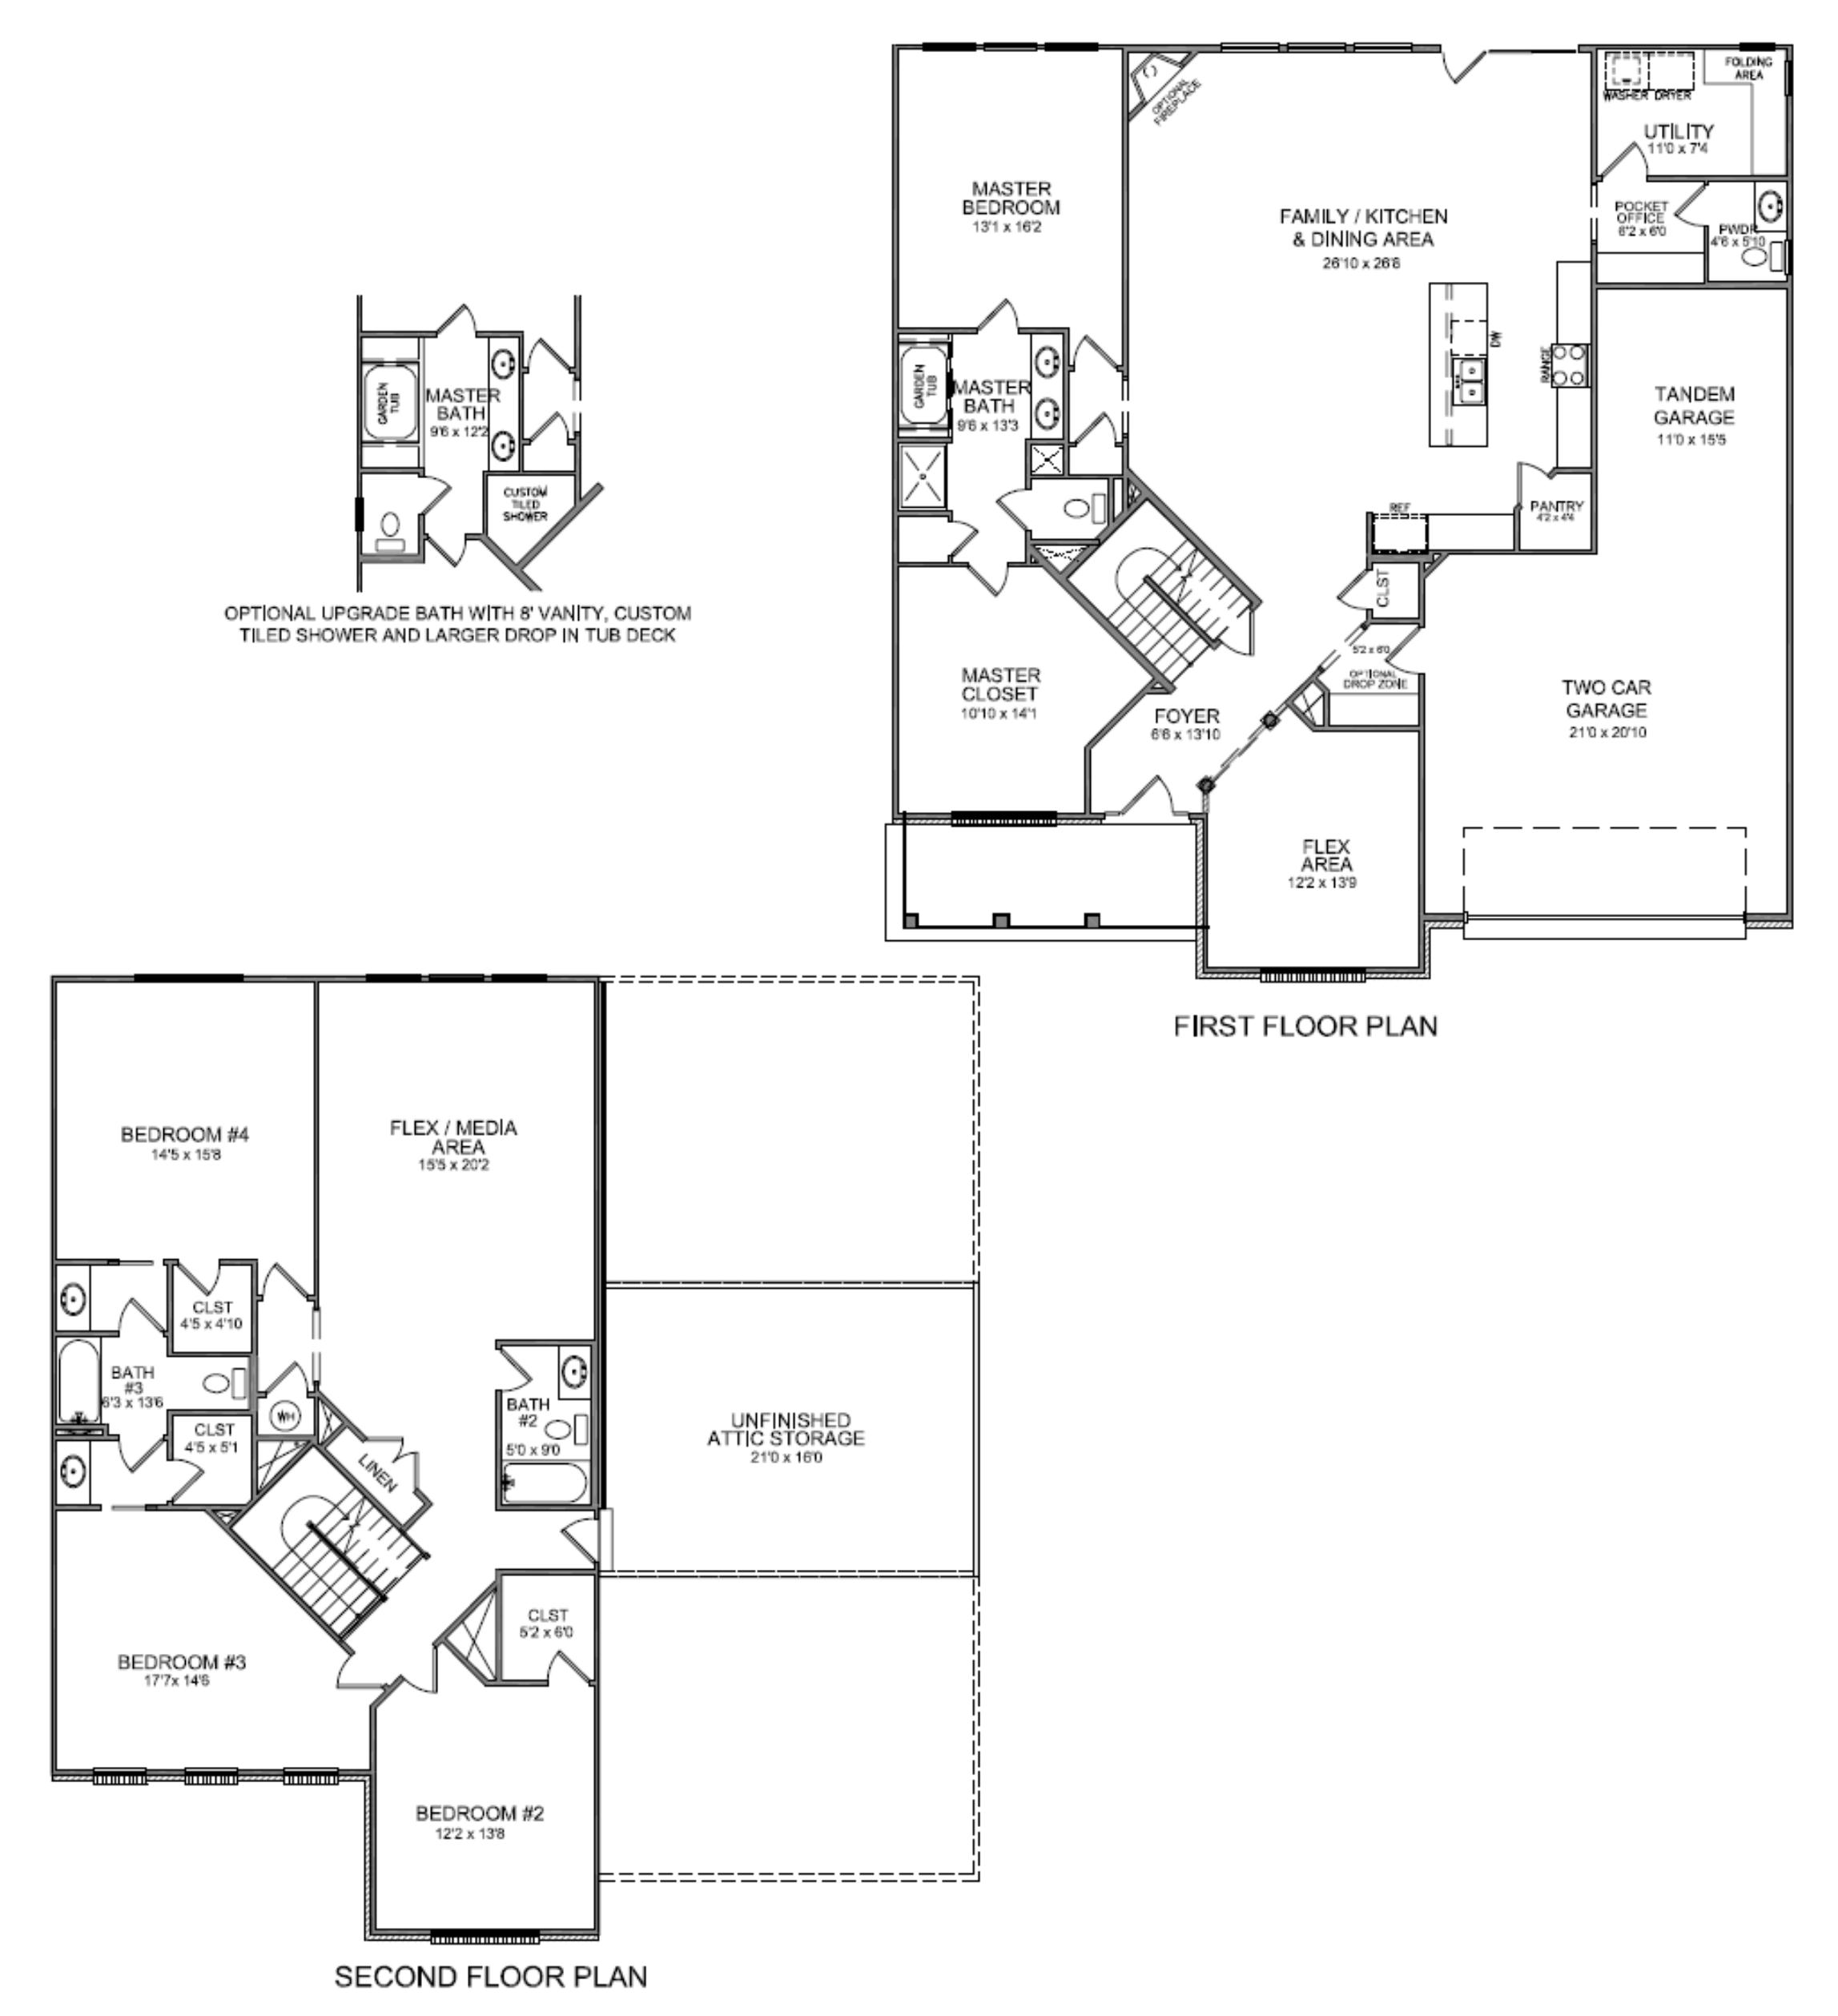 460352393133066144 further Houseplan088D 0120 besides Adehyi House Plan besides Bathroom With Walk In Closet Floor Plan as well 2096 Square Feet 3 Bedrooms 2 5 Bathroom Traditional House Plans 3 Garage 612. on master bathroom floor plans with closets